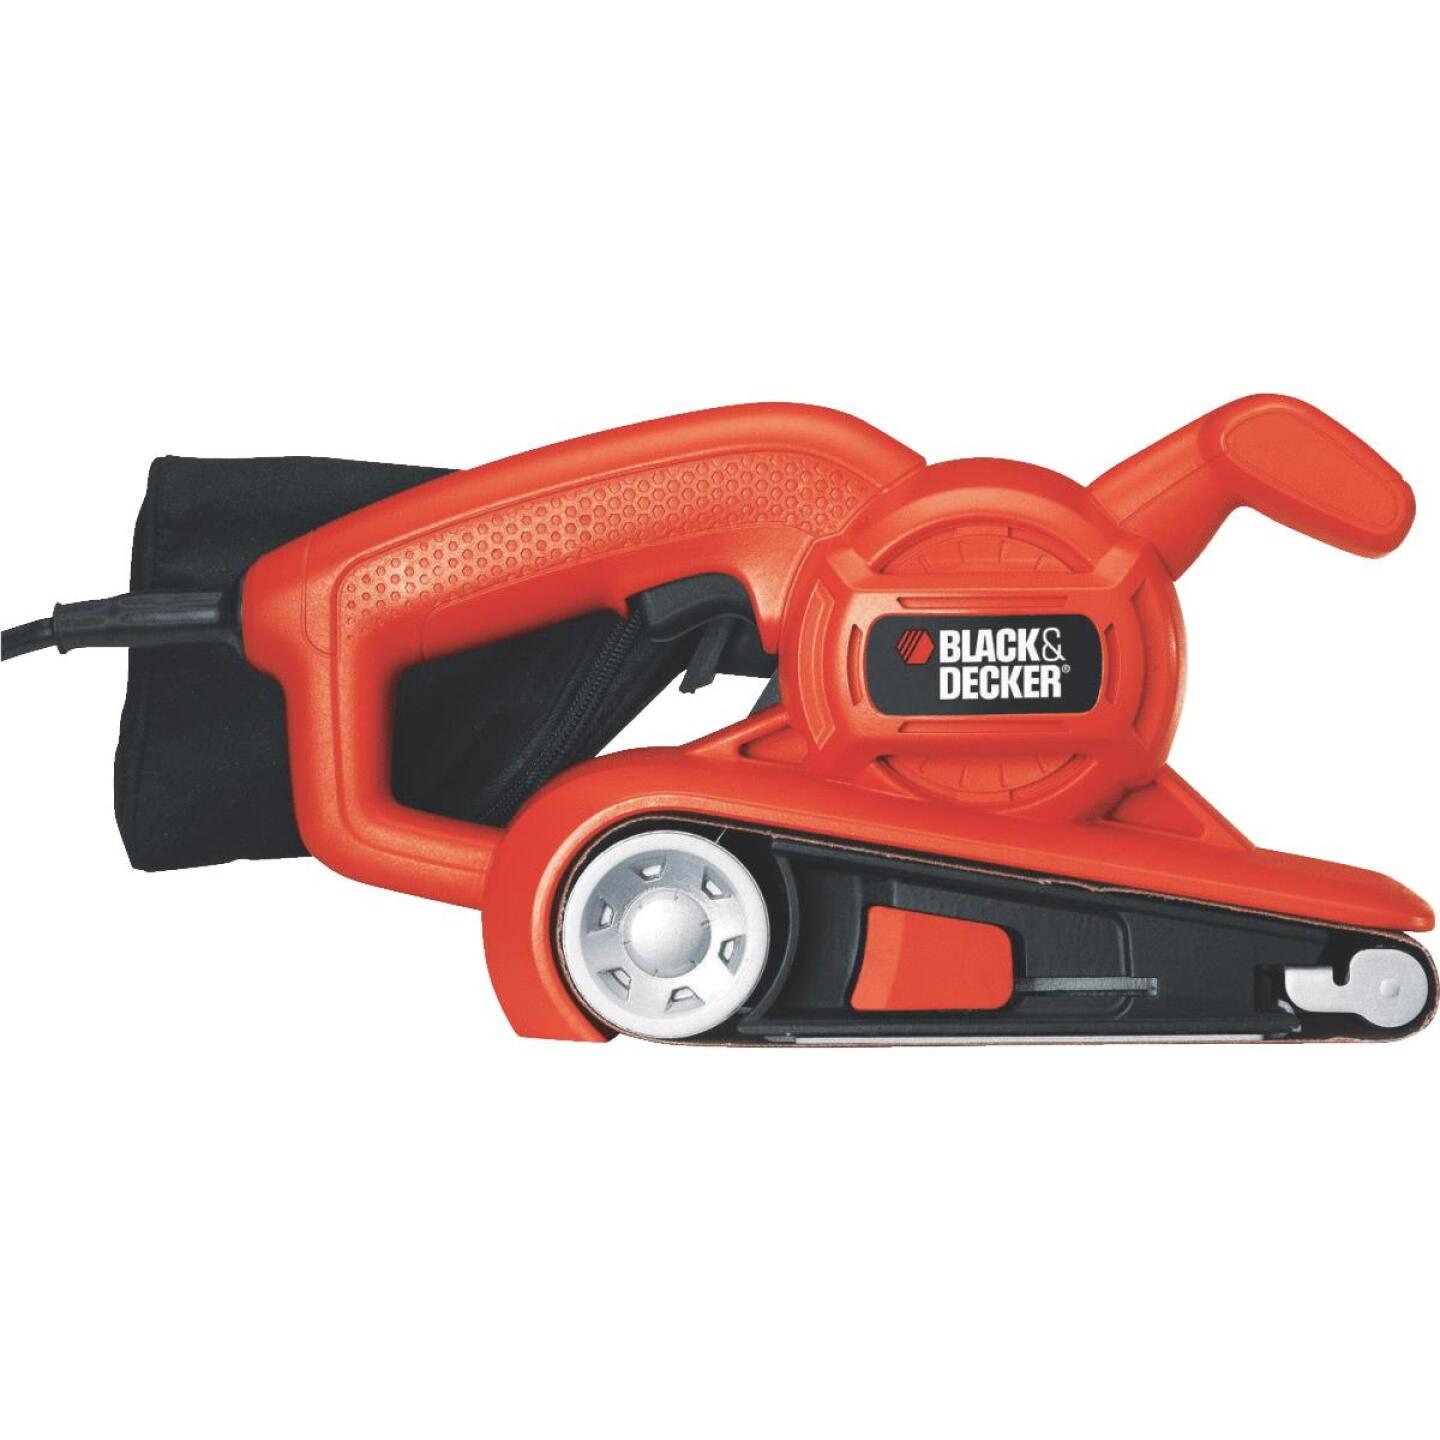 Black & Decker 3 In. x 18 In. Compact Belt Sander Image 1